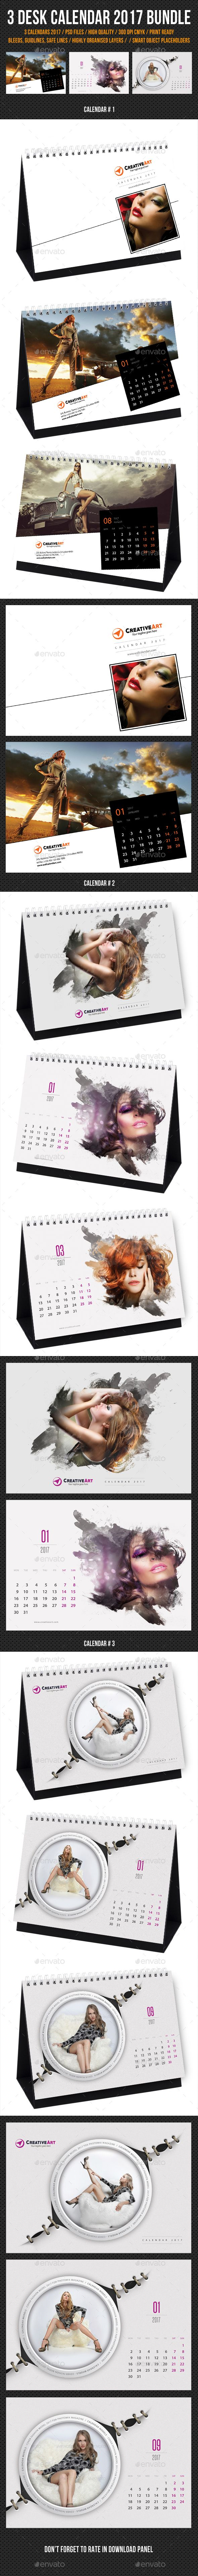 3 in 1 Creative Desk Calendar 2017 Templates PSD Bundle. Download here: https://graphicriver.net/item/3-in-1-creative-desk-calendar-2017-bundle-05/16995423?ref=ksioks